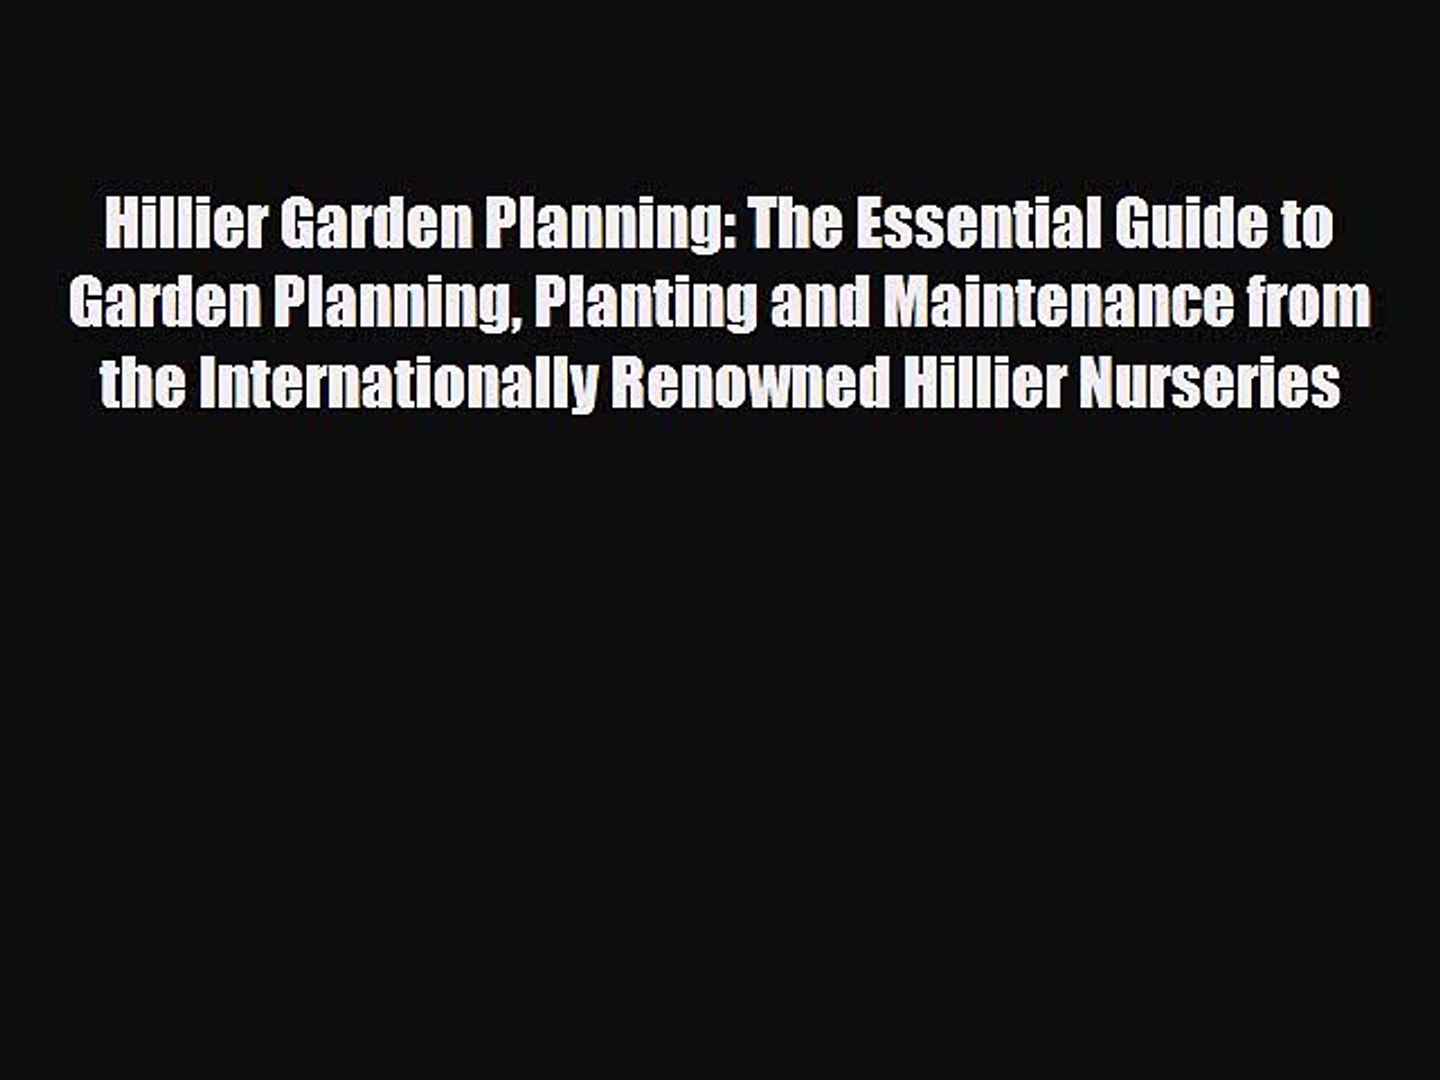 [PDF] Hillier Garden Planning: The Essential Guide to Garden Planning Planting and Maintenance